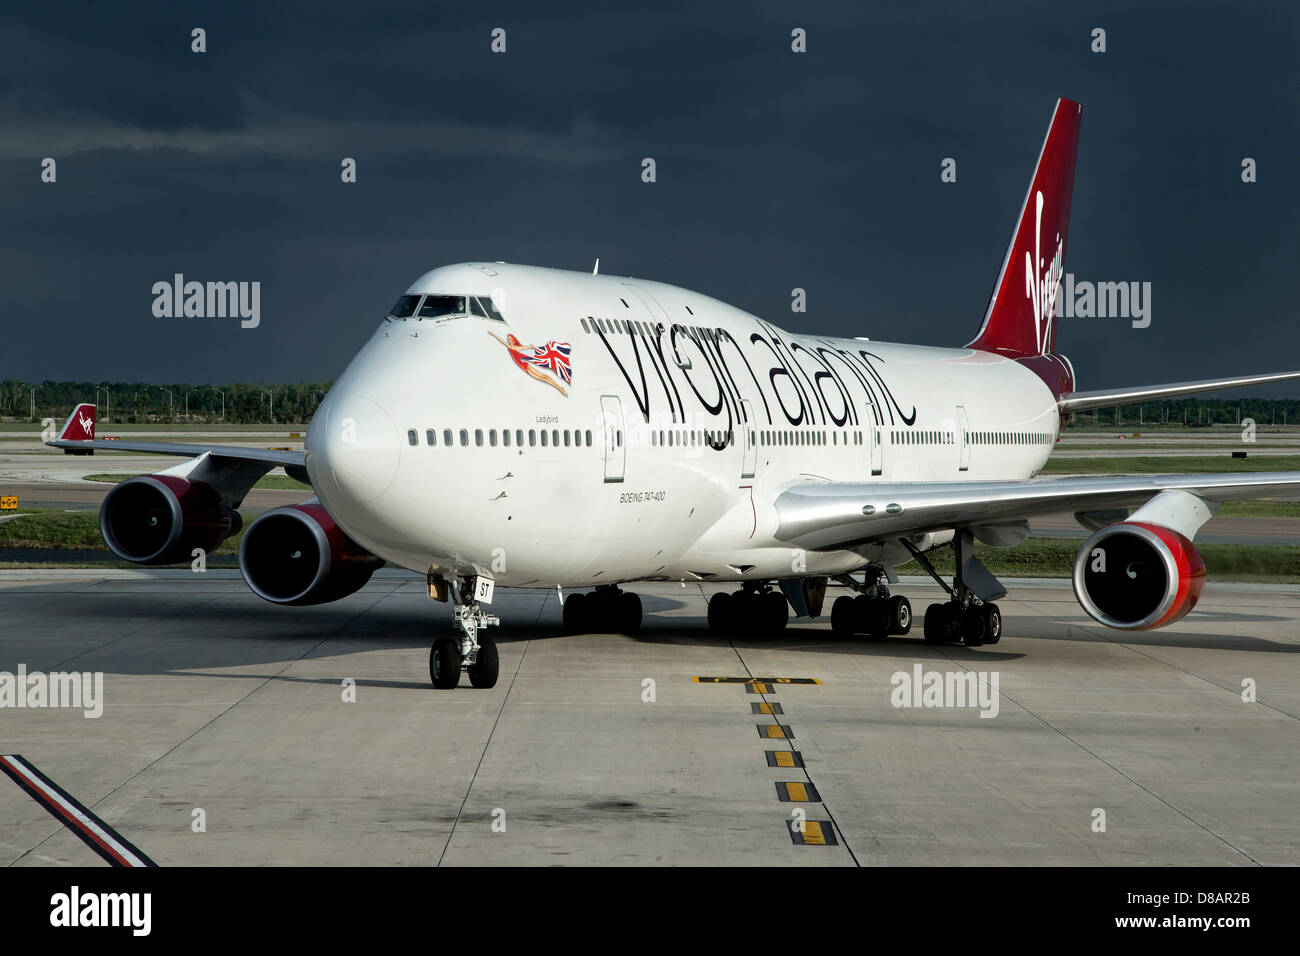 A Boeing 747 of Virgin Atlantic airways taxiing on to stand - Stock Image